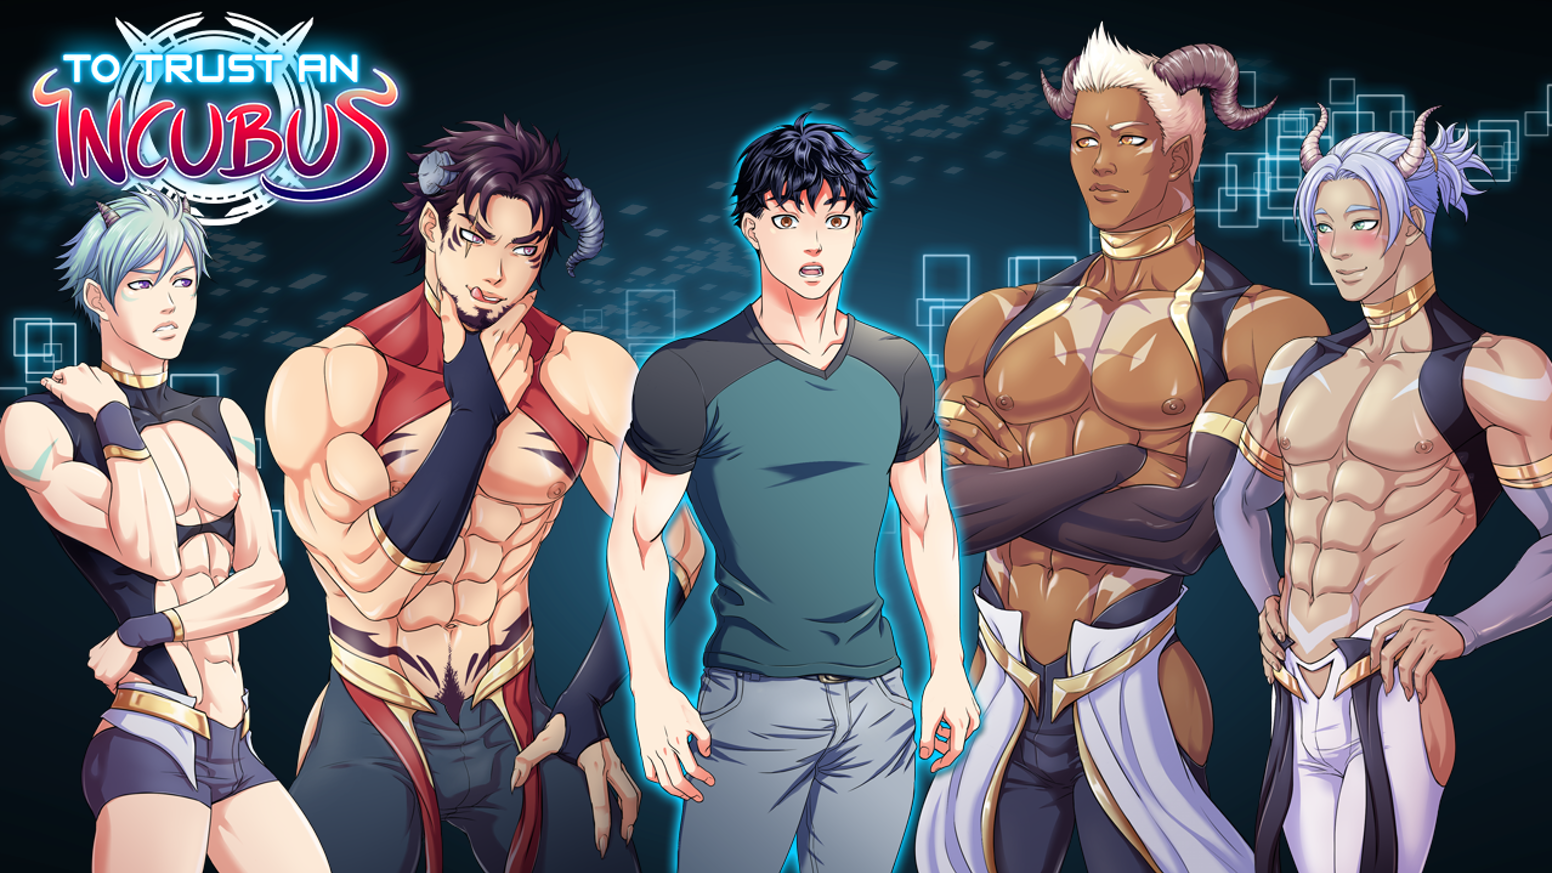 The temp worker Kenta is quarantined in a lab with Professor Raiden, his Lab Assistant Arata, and 4 SEXY Incubi from another dimension!